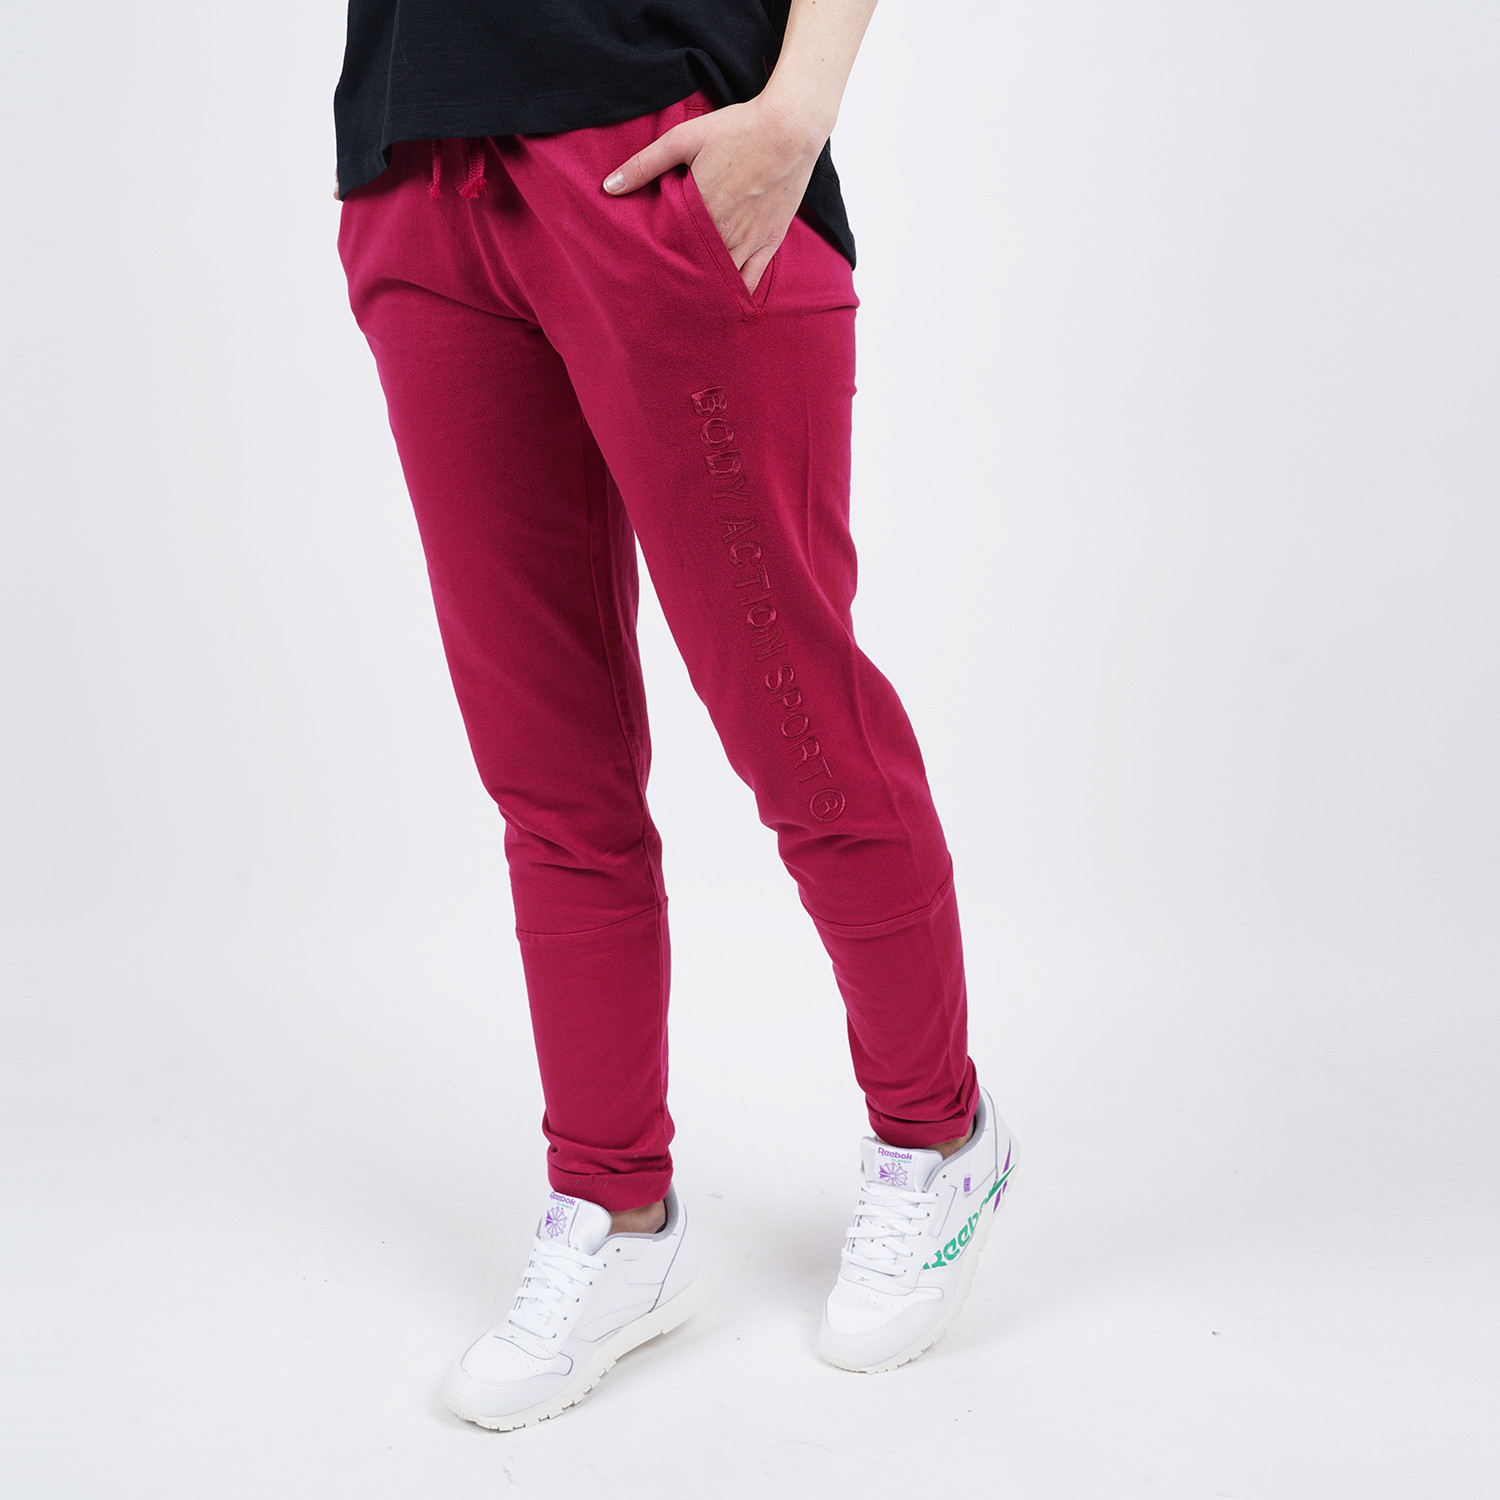 Body Action Women's Skinny Joggers (9000050087_8527)